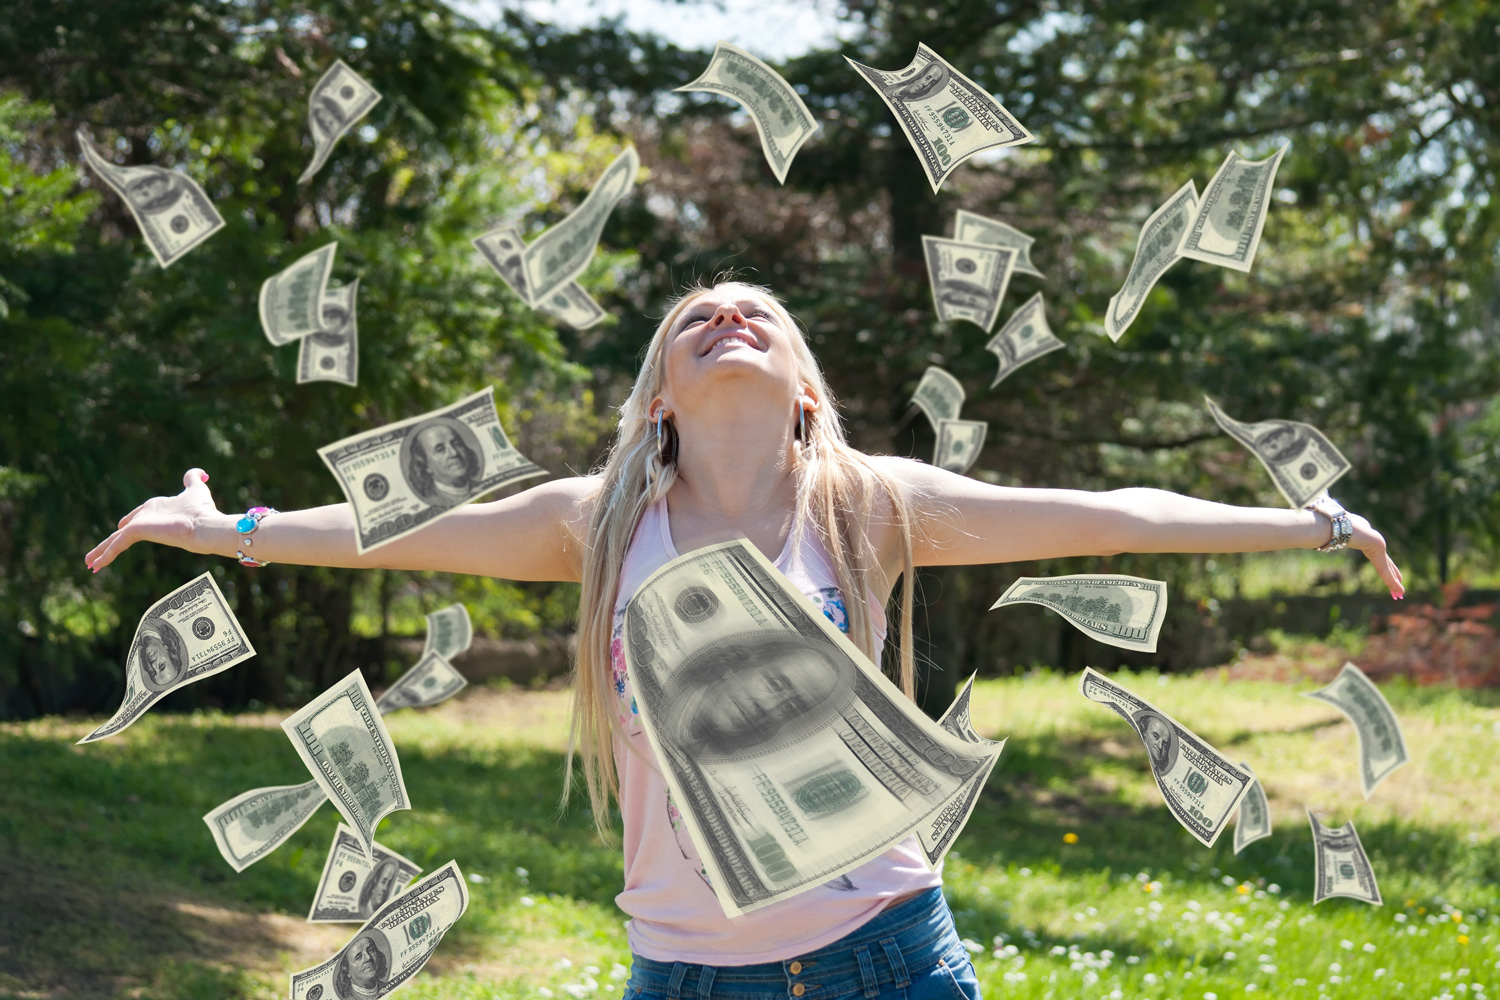 http://dailyheadlines.com/wp-content/uploads/2016/10/woman-throwing-money-in-the-air.jpg